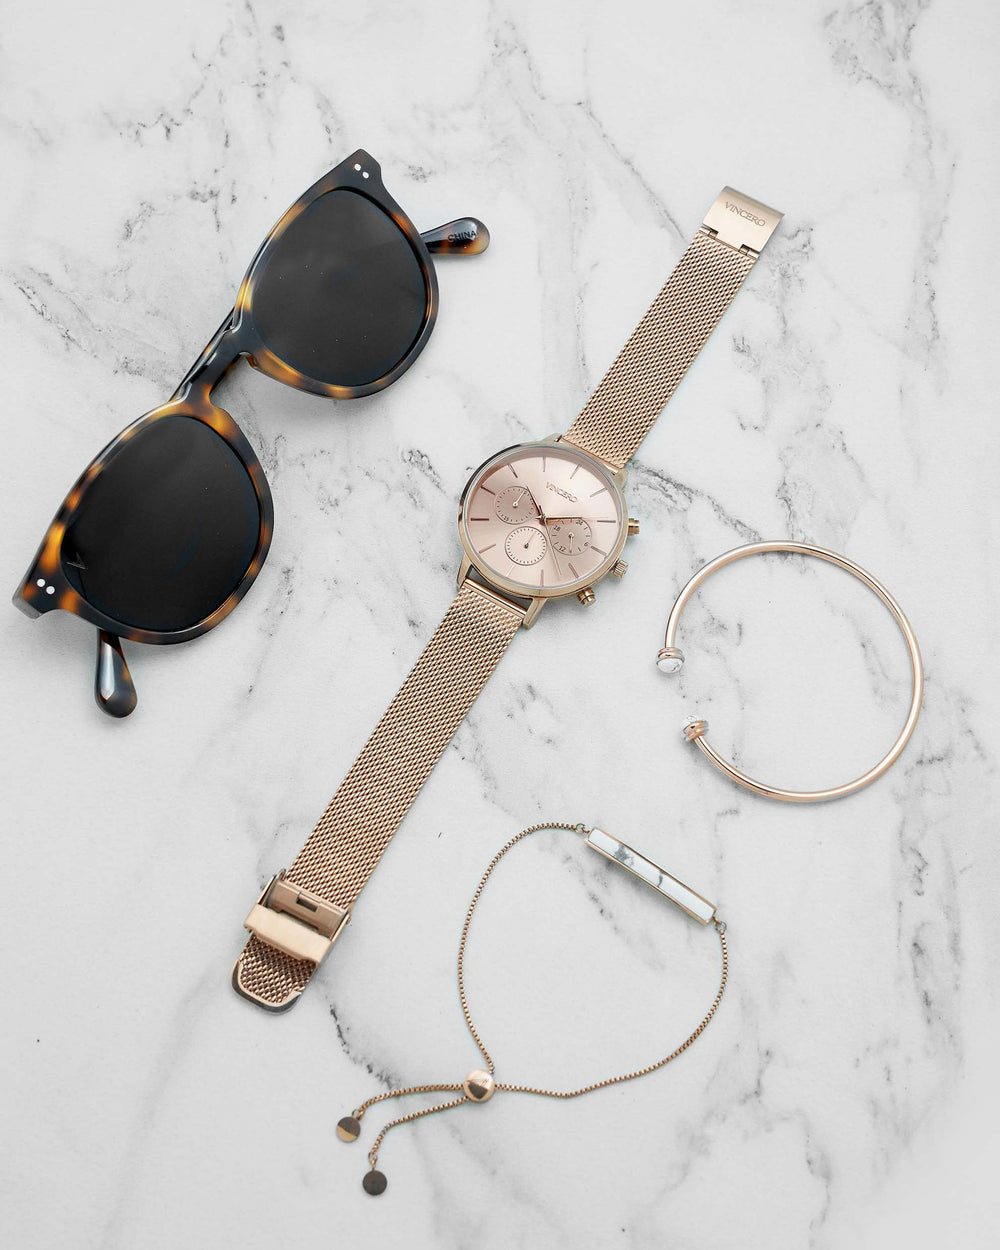 Kleio Rose Gold 316L Stainless Steel Mesh Strap Rose Gold Watch Face Rose Gold Case Clasp Rose Gold Accents